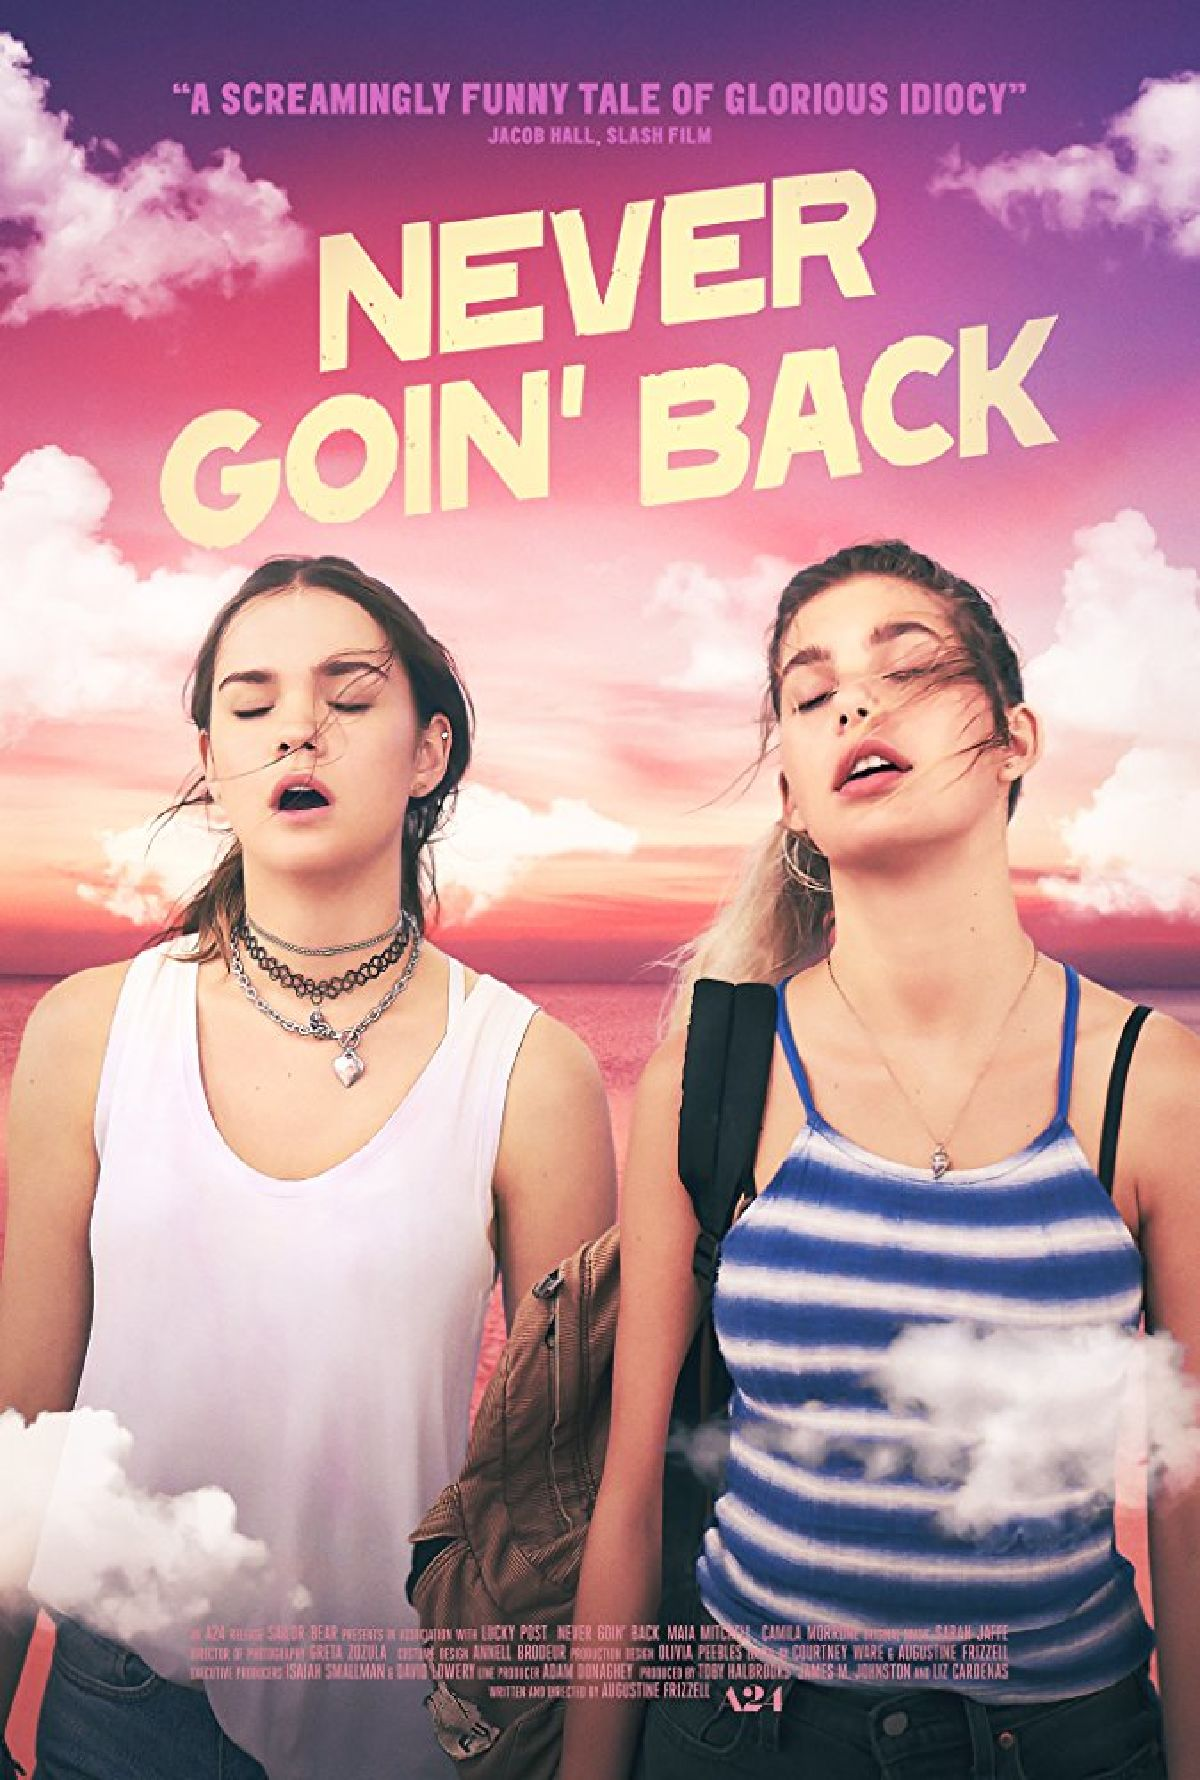 'Never Goin' Back' movie poster